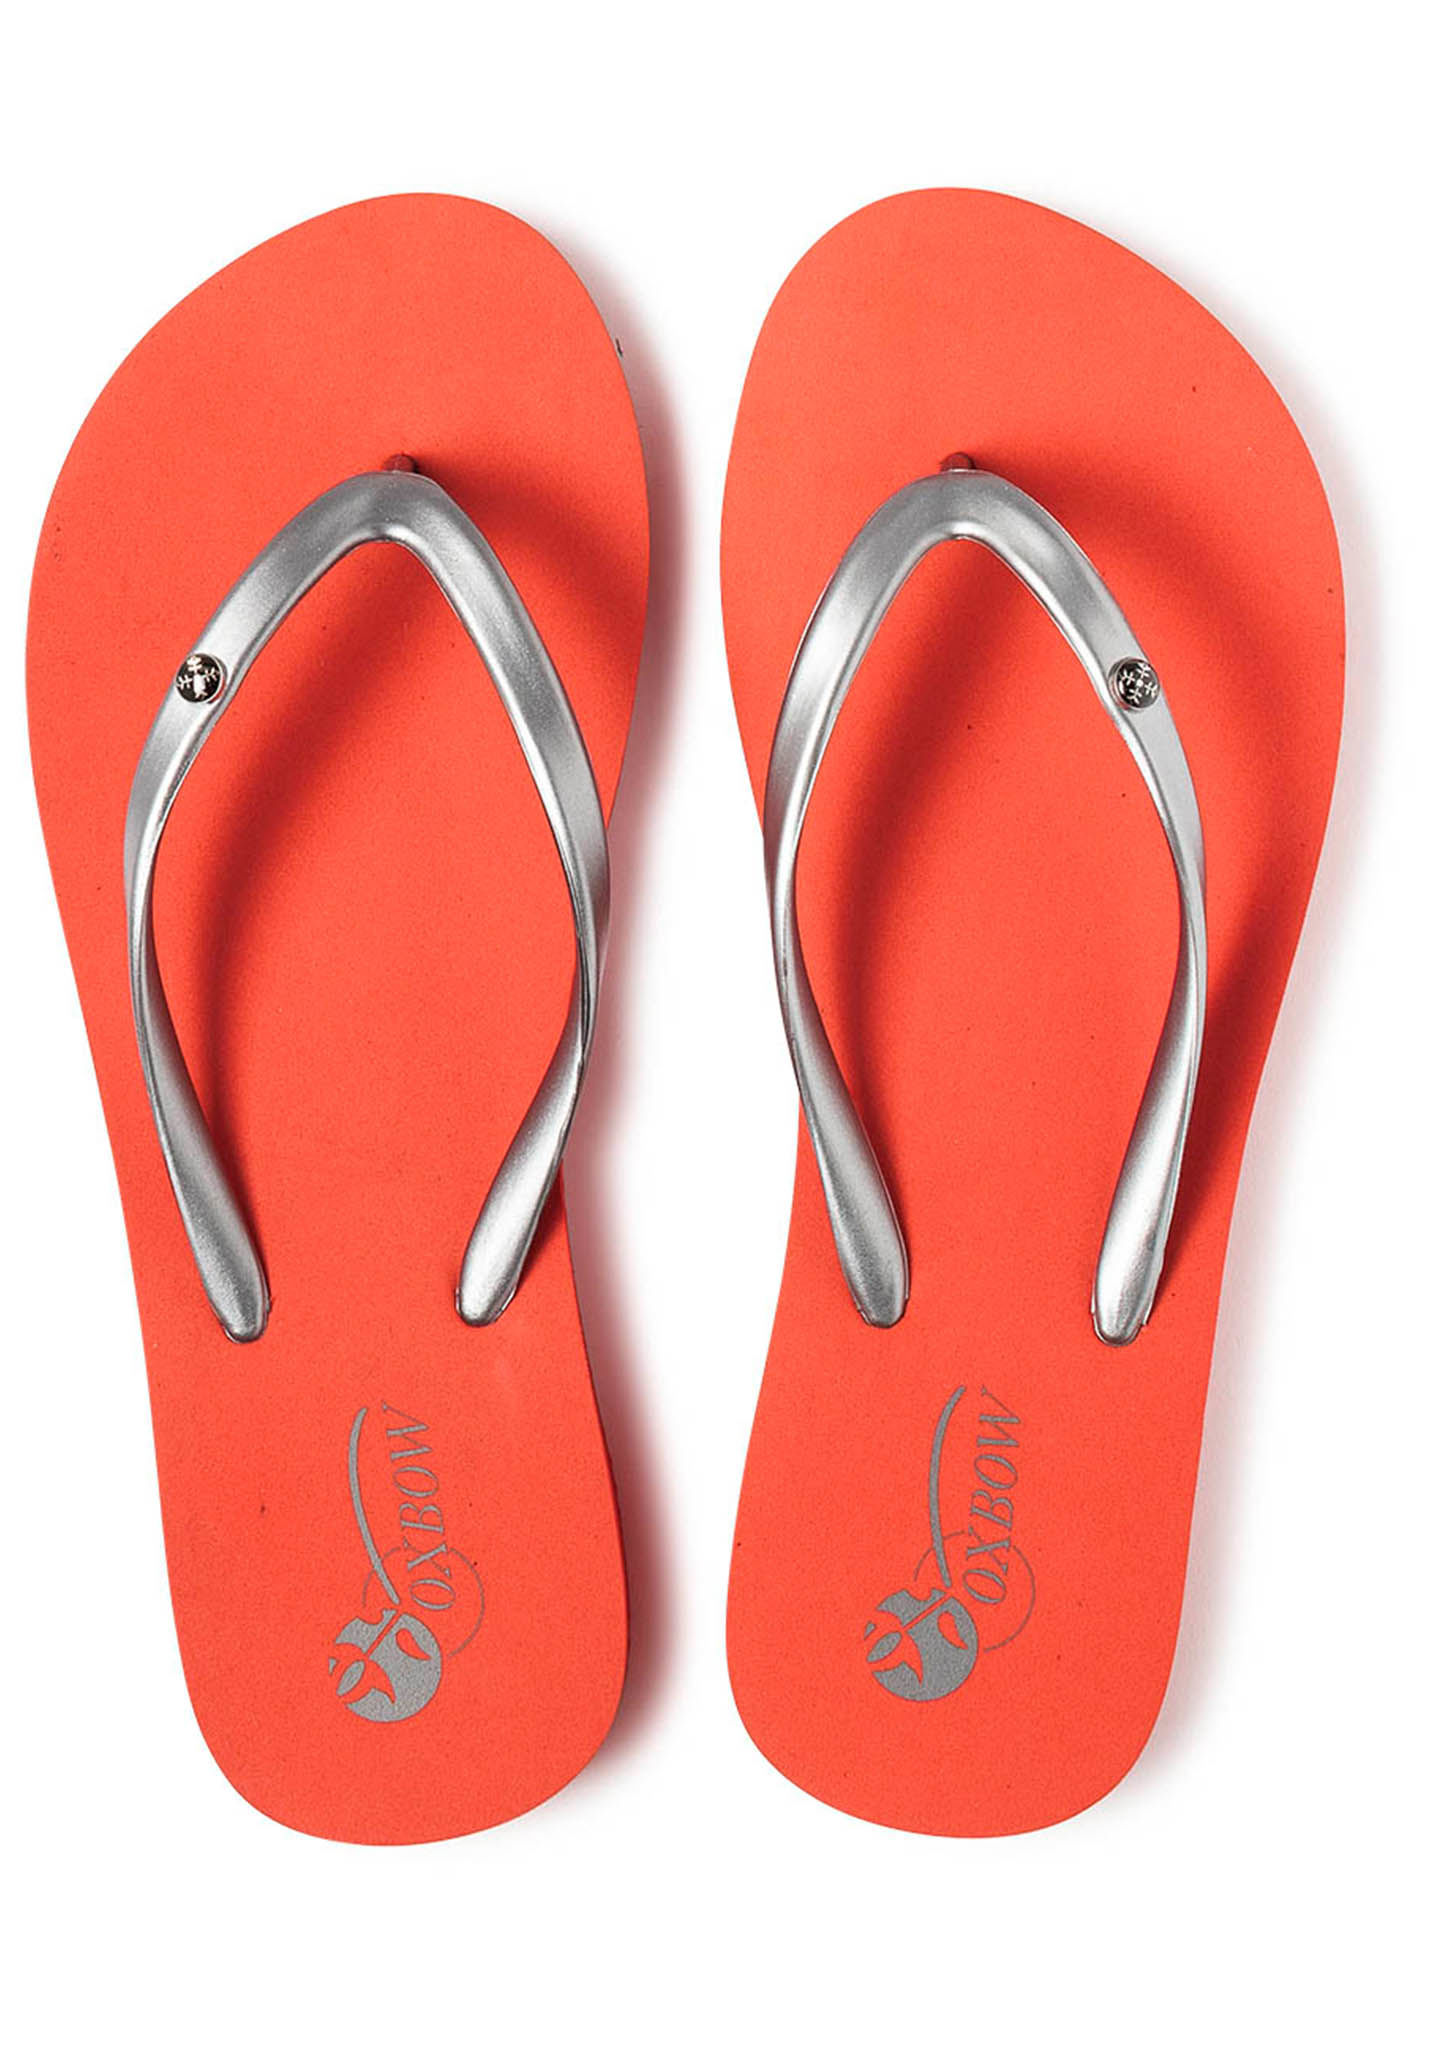 c935d781a0 OXBOW Vaccara - Tongs pour Femme - Rouge - Planet Sports